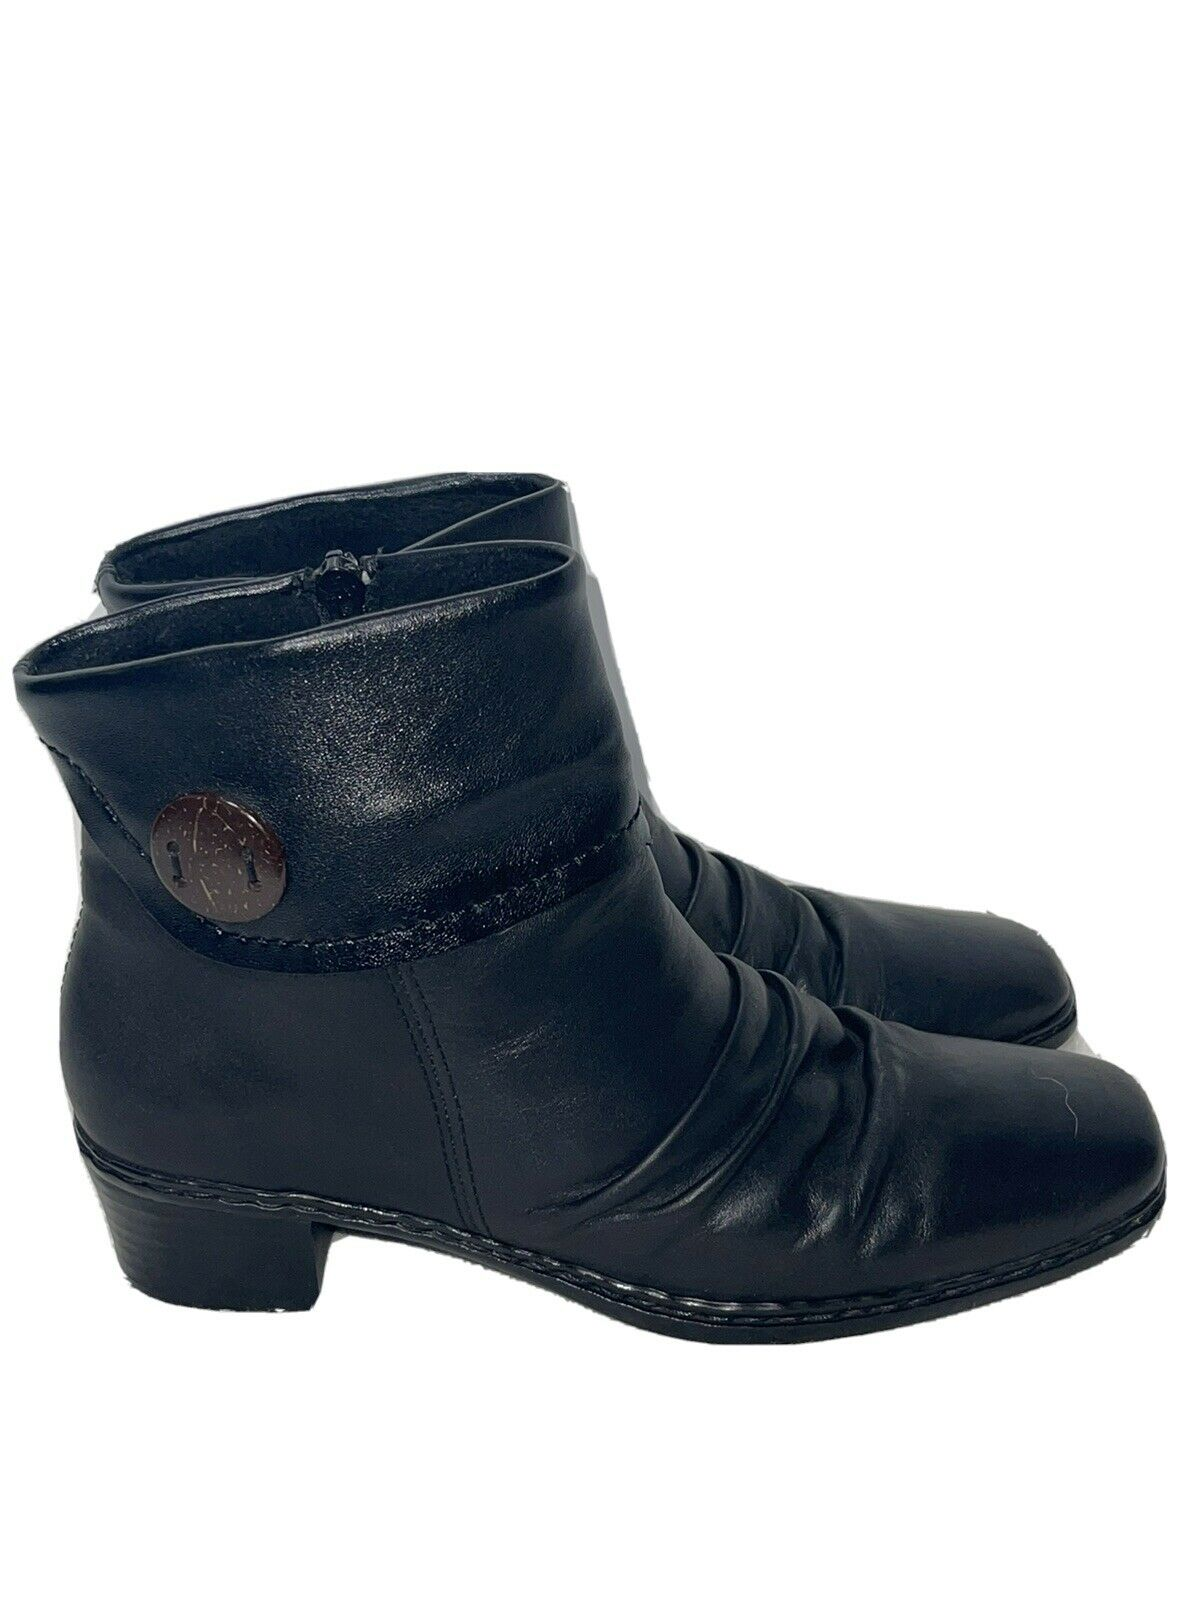 Rieker Women's Heeled Ankle Boots Black Leather Size 37 US 6.5/7